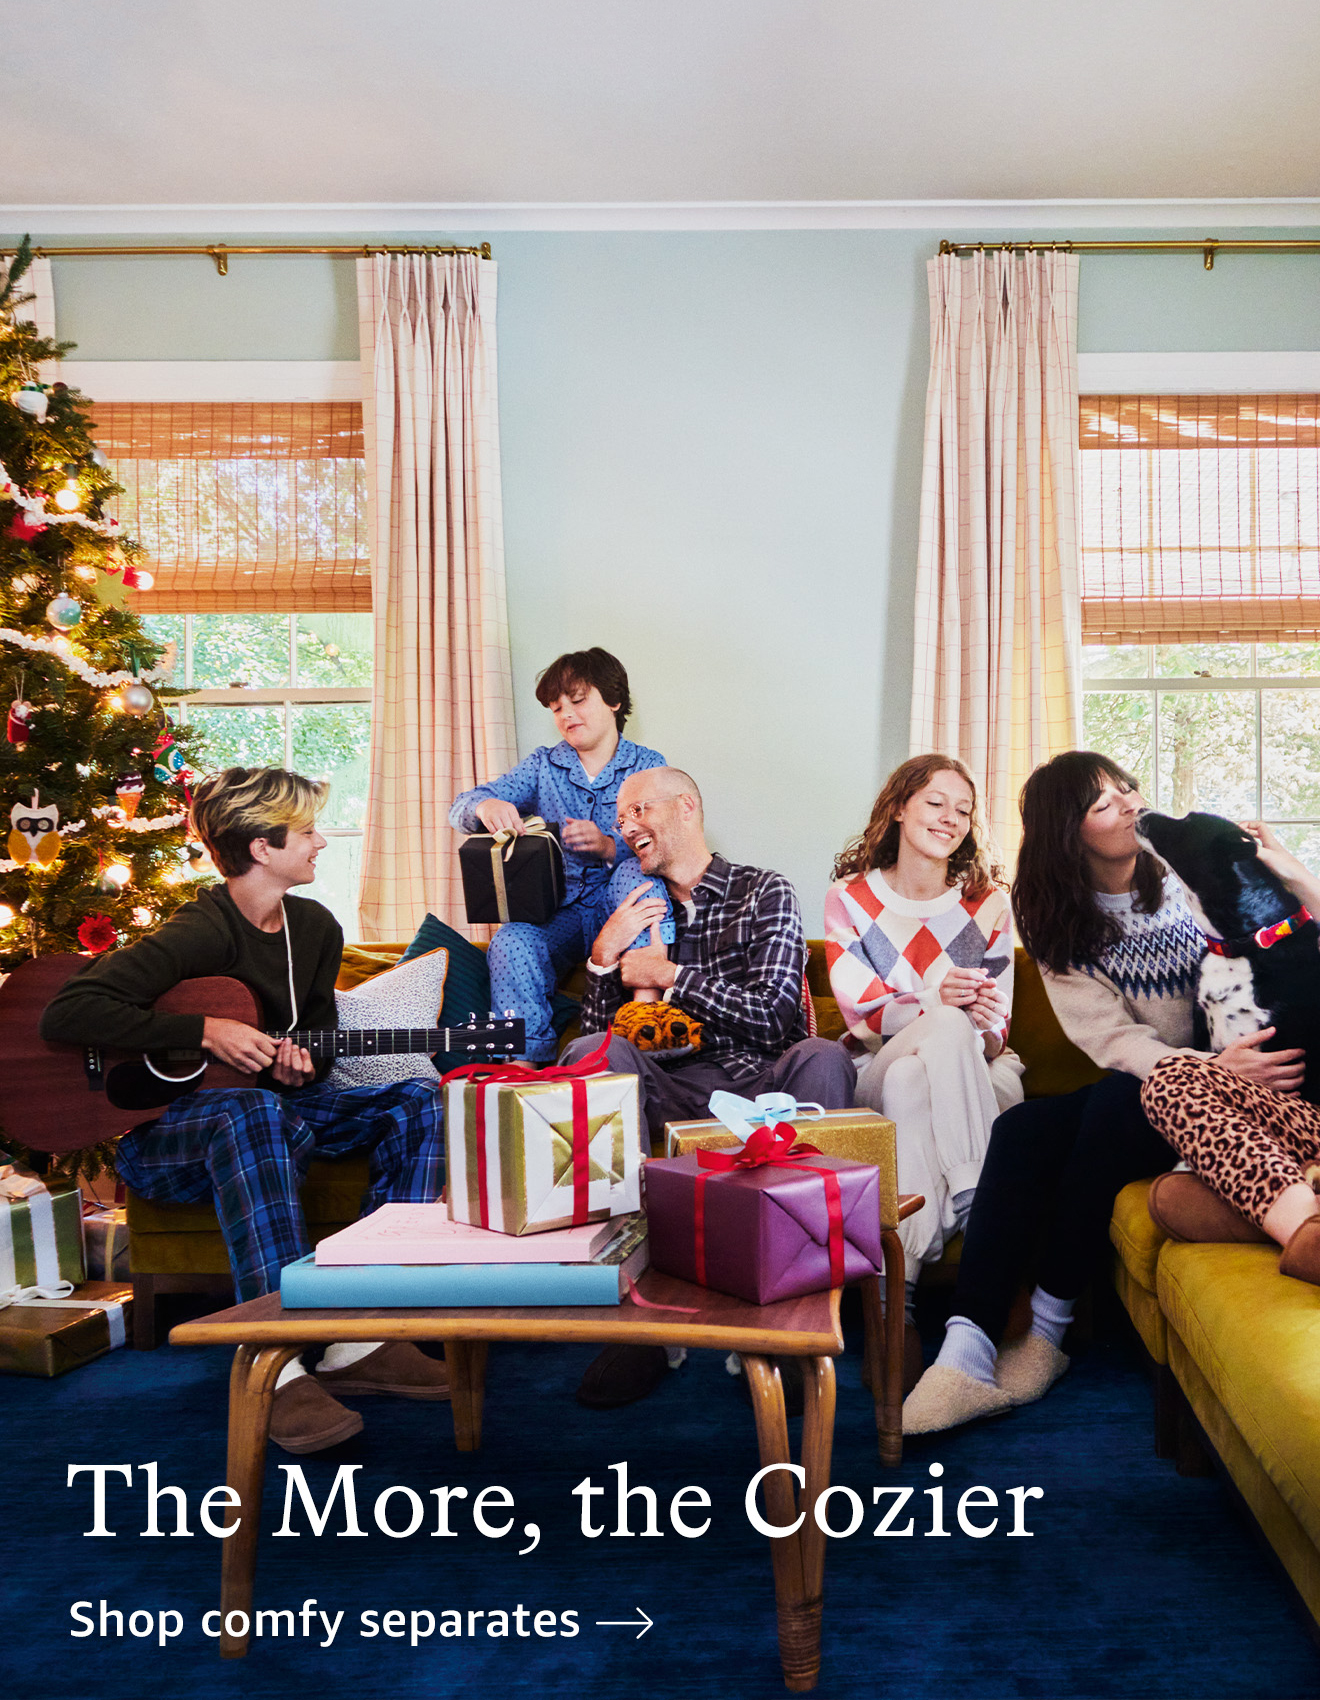 The More, the Cozier